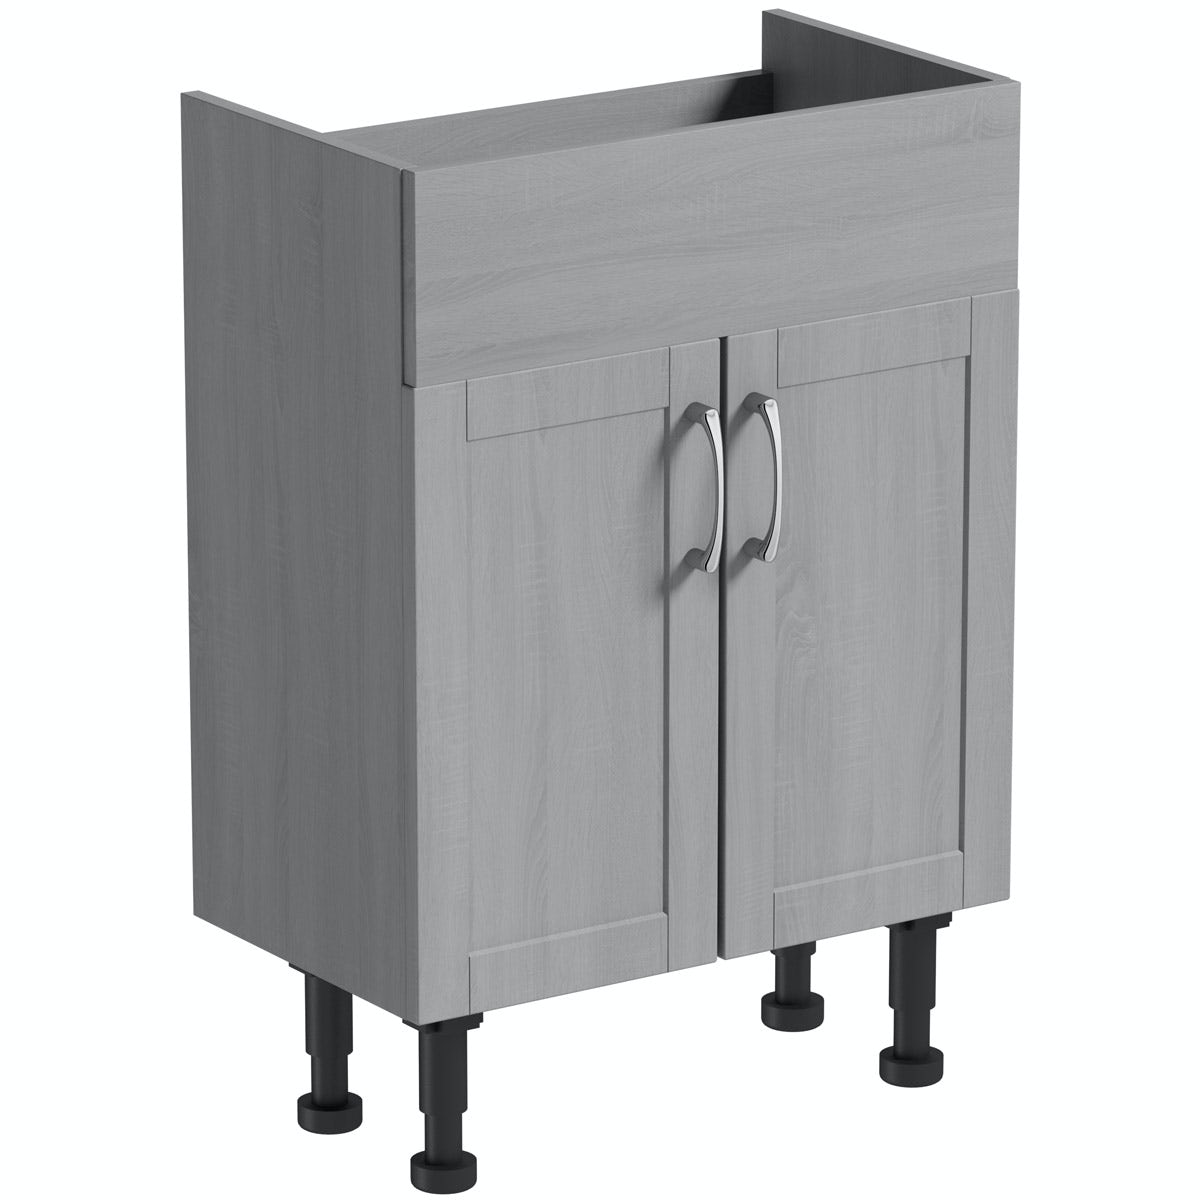 The Bath Co. Newbury dusk grey vanity unit 600mm